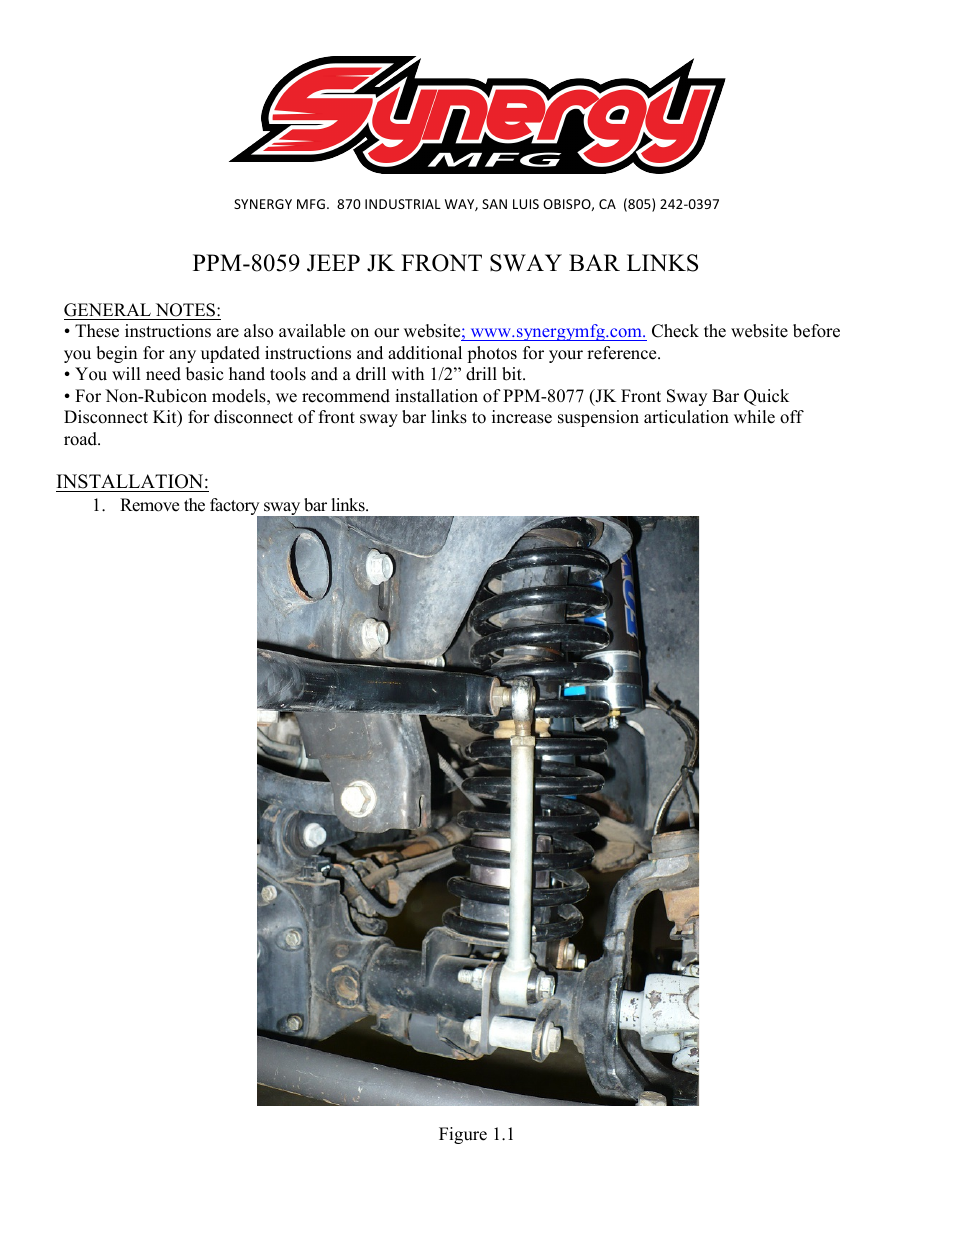 Synergy 8059 - Jeep JK Front Sway Bar Links User Manual | 3